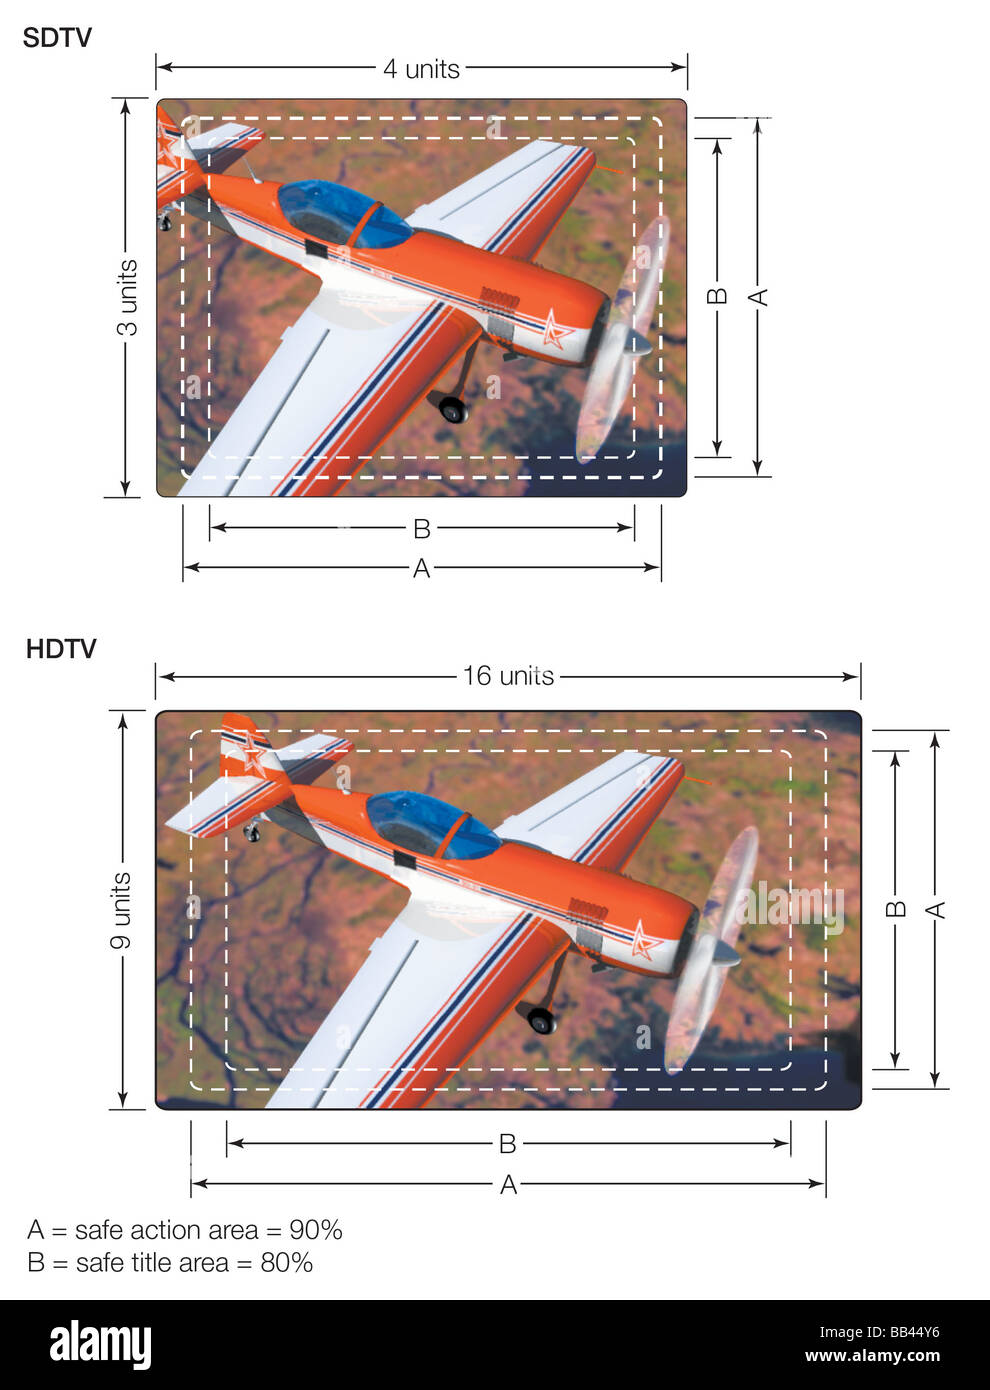 A comparison of the aspect ratios of standard-definition (SDTV) and high-definition (HDTV) picture tubes. - Stock Image